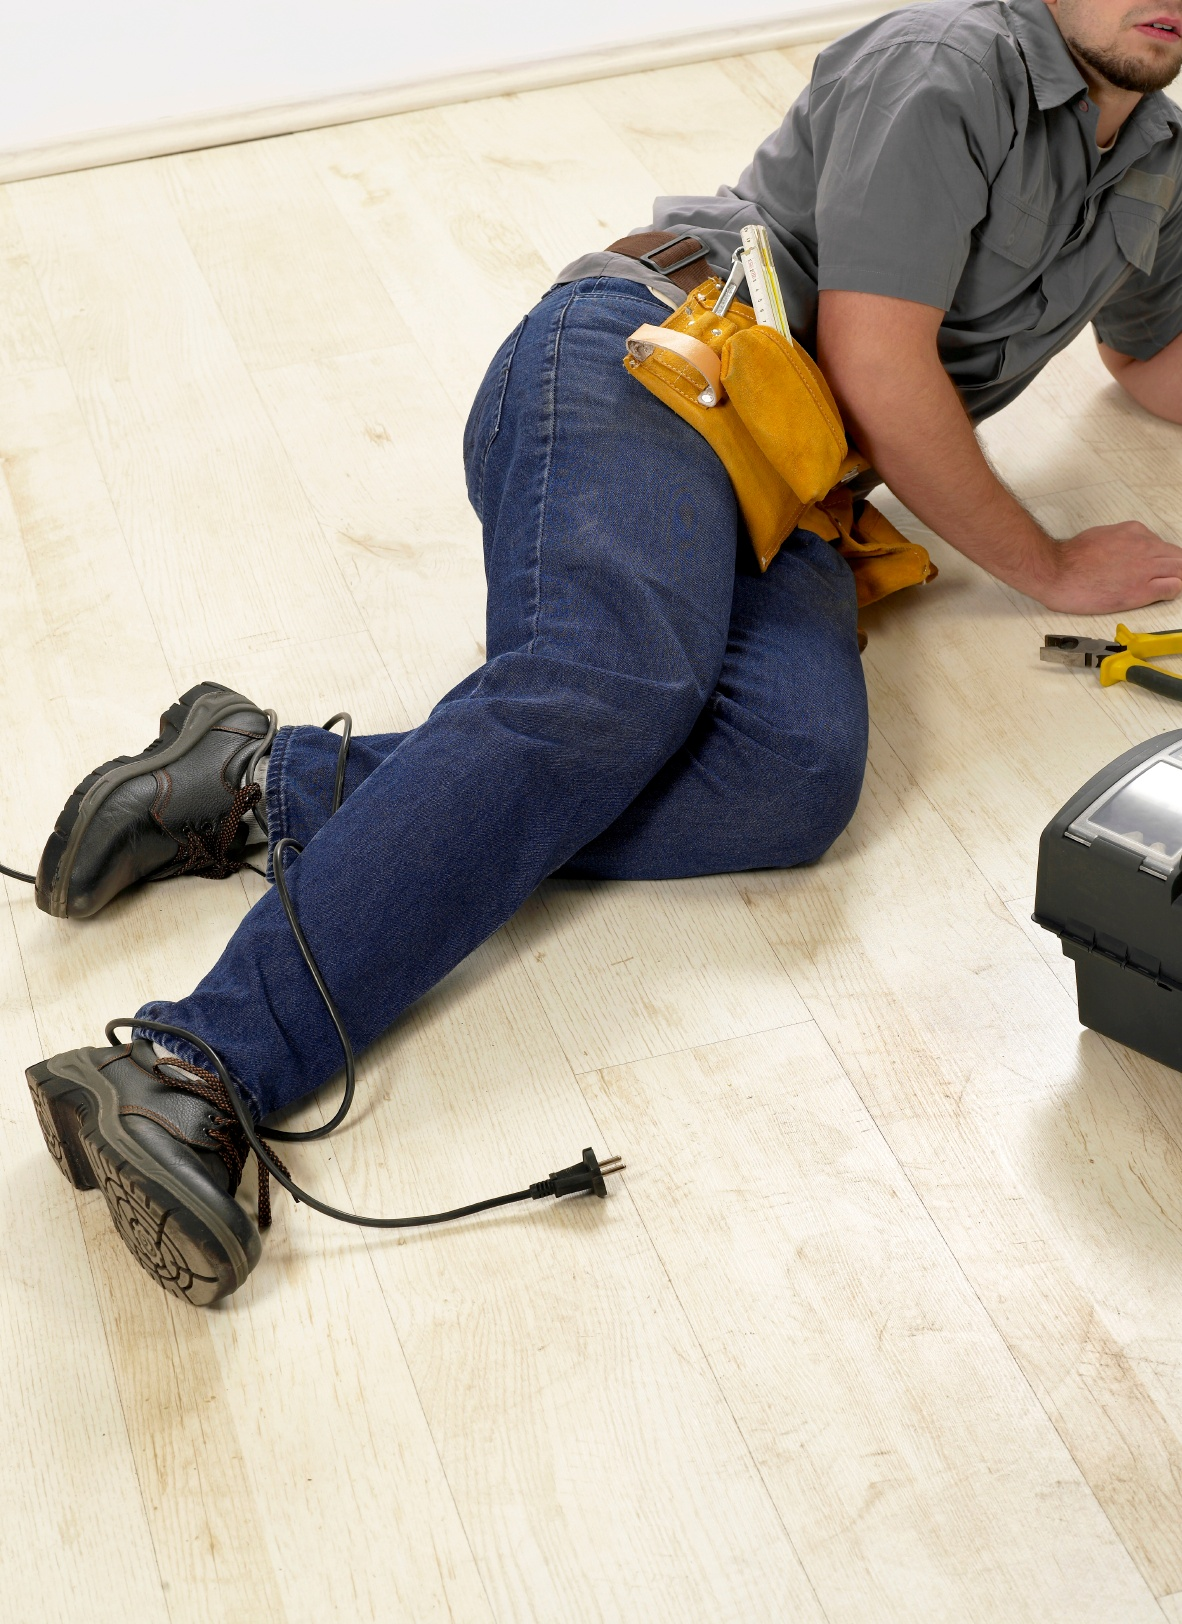 Georgia Workers' Compensation Lawyer